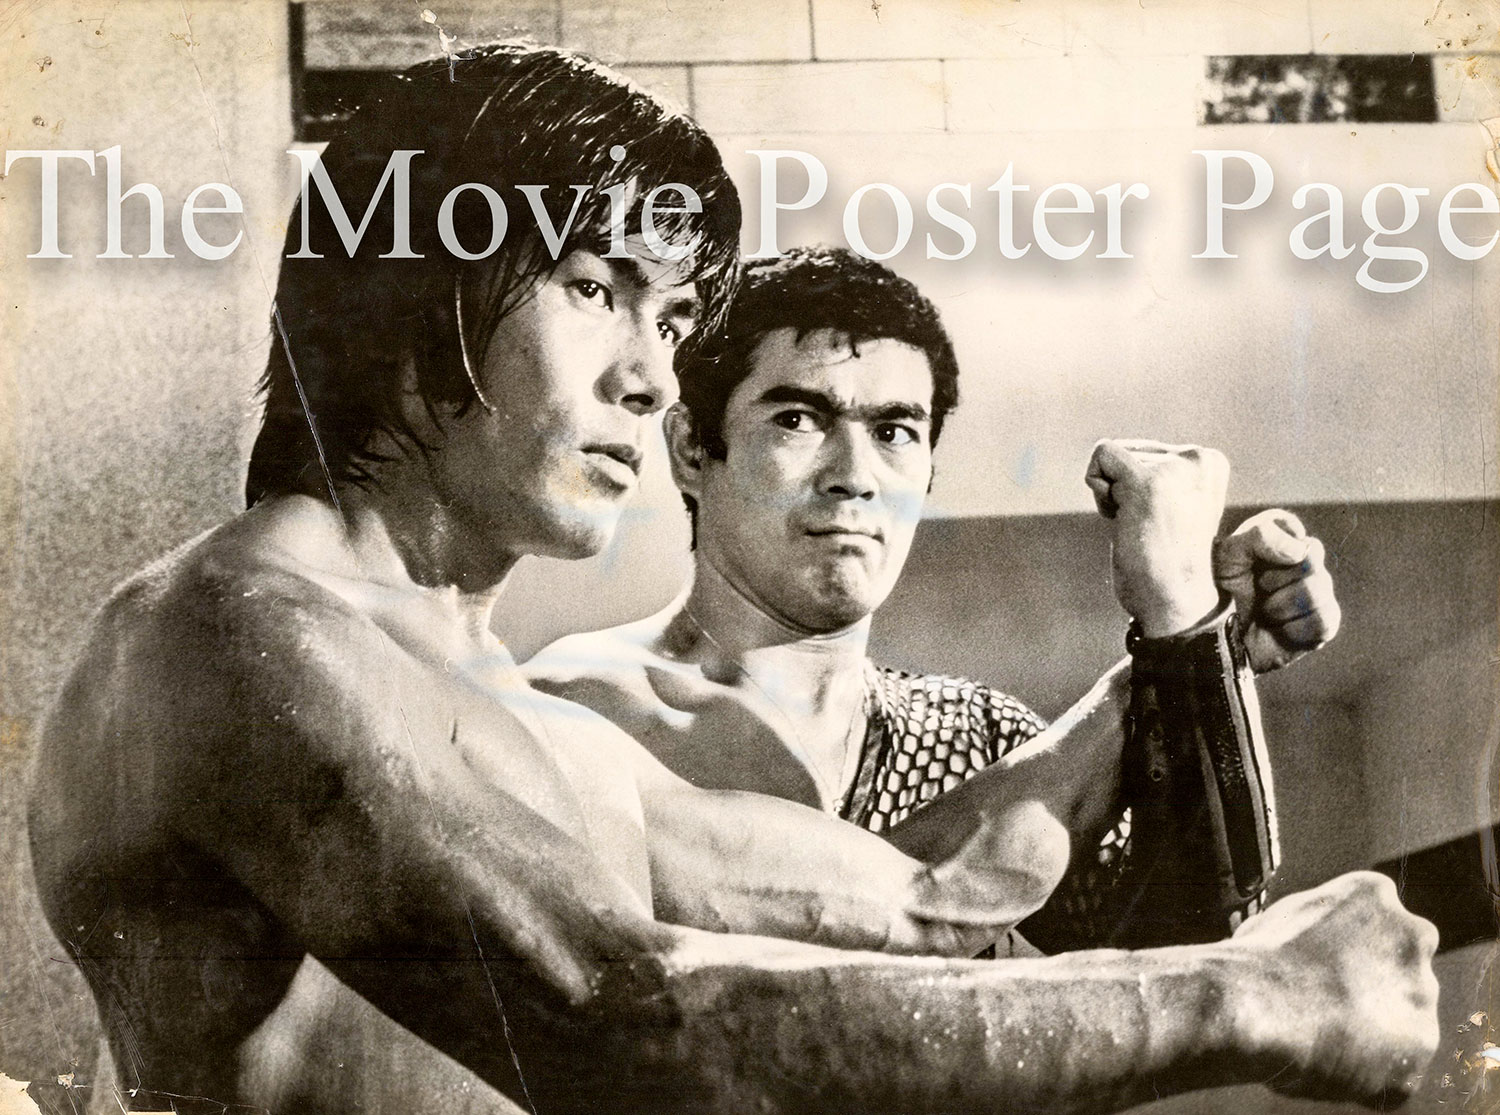 Pictured is a black-and-white still of the late Bruce Lee.